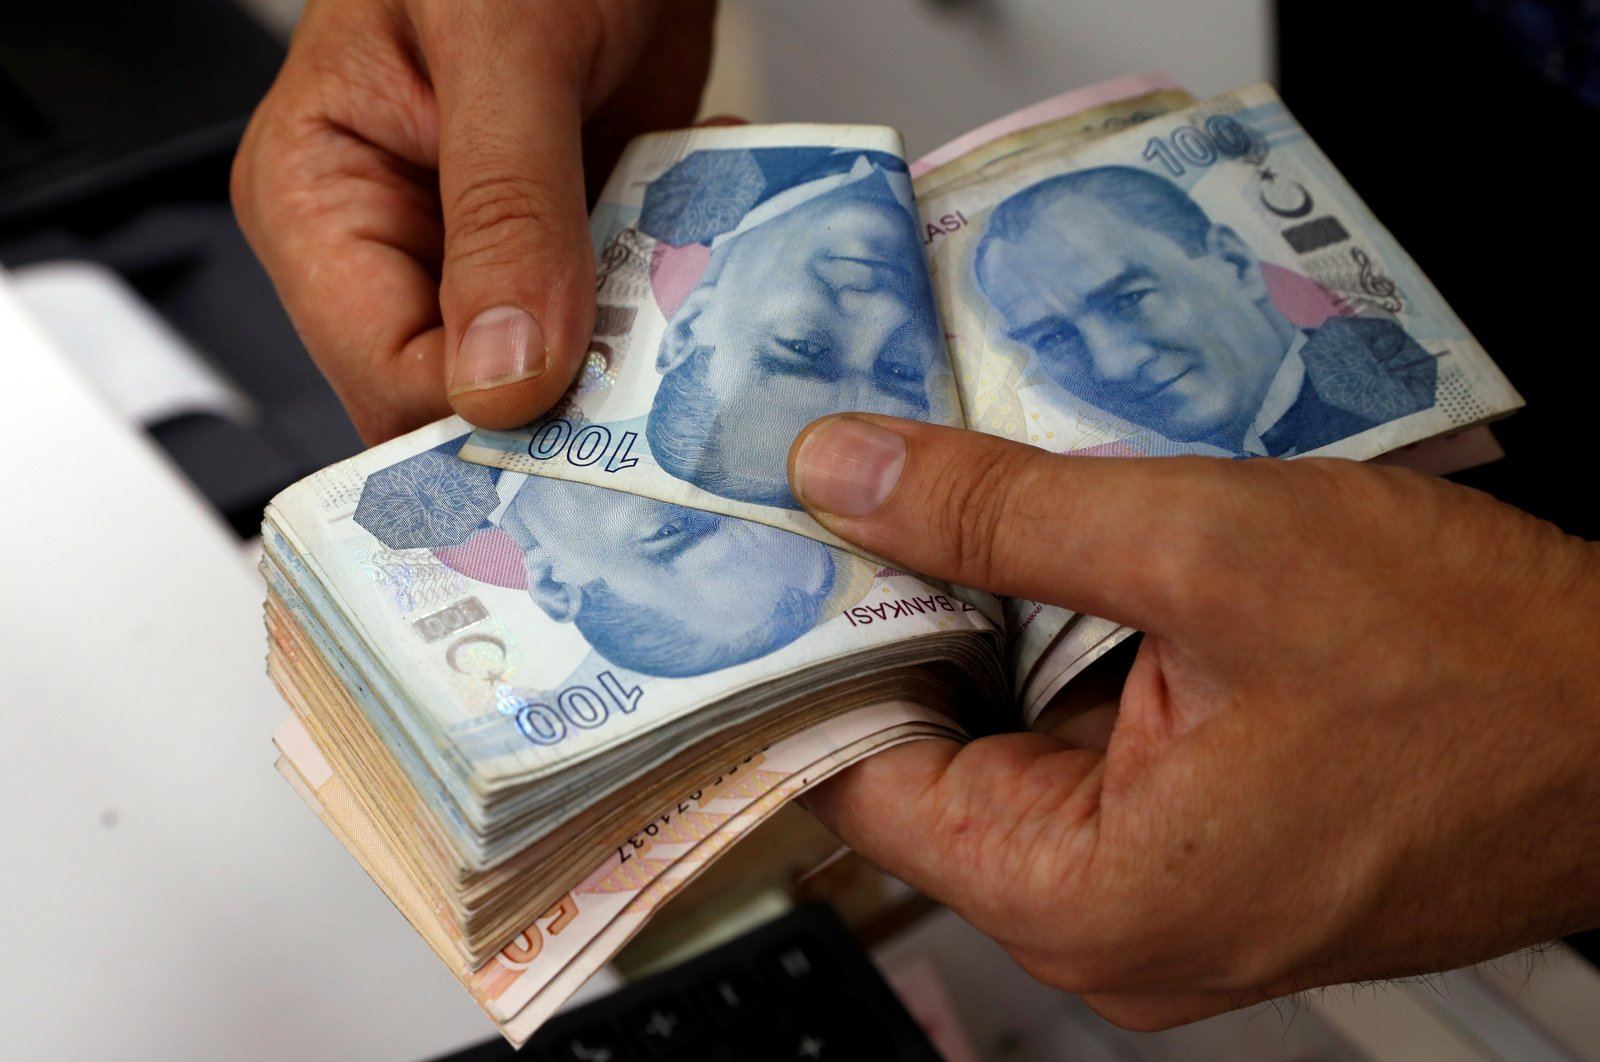 A money changer counts Turkish lira banknotes at a currency exchange office in Istanbul, Turkey, Aug. 2, 2018. (Reuters Photo)